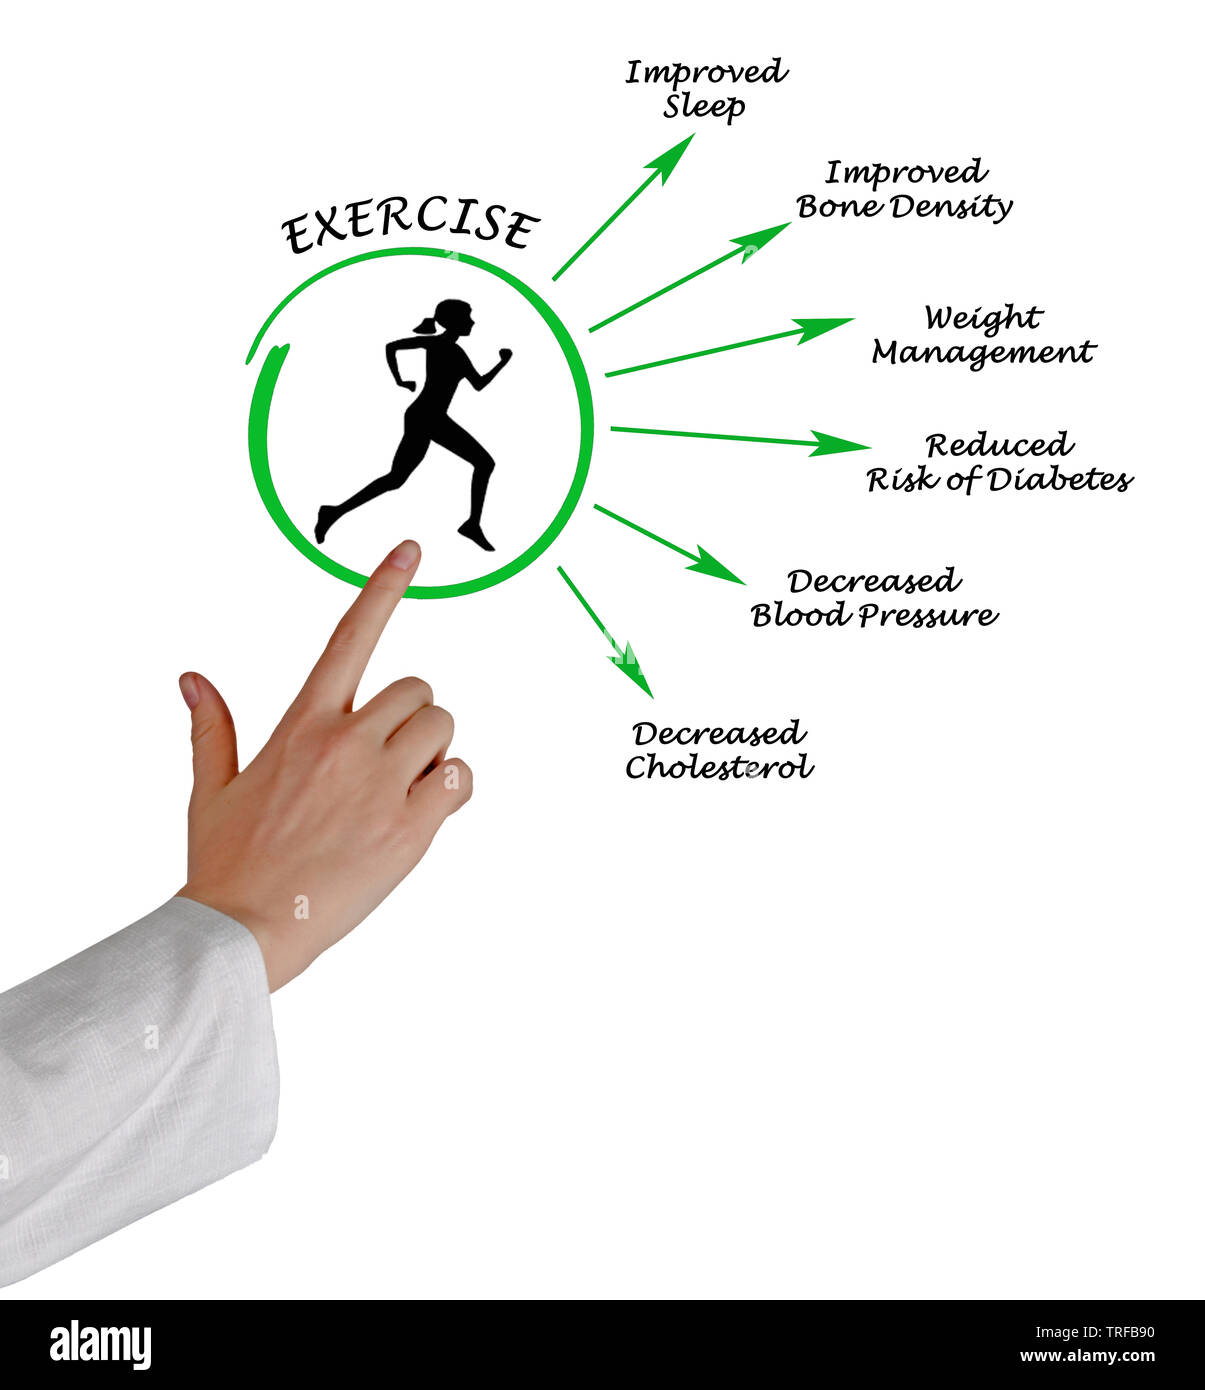 Usefulness of exercising - Stock Image